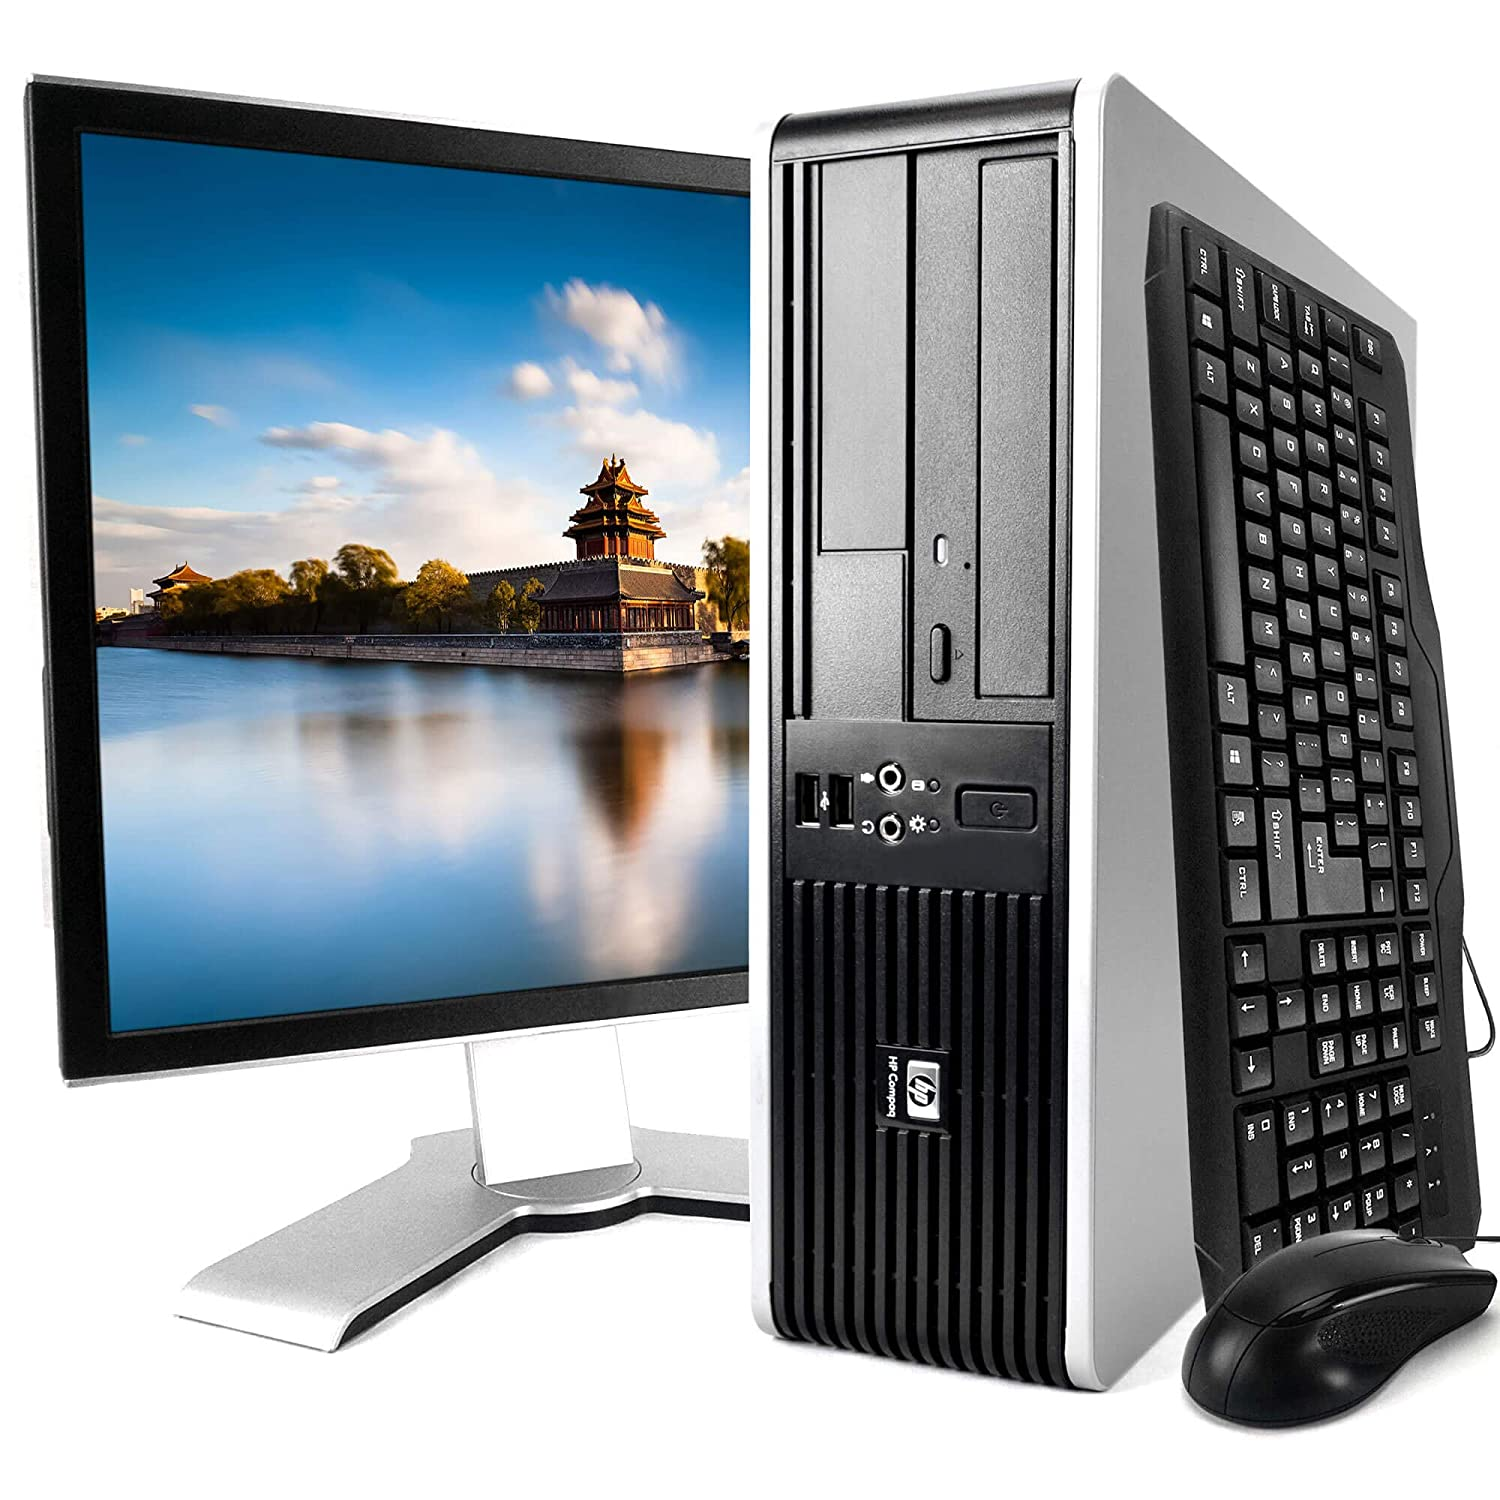 HP Elite 7900 Desktop PC Package, Intel Core 2 Duo Processor, 8GB RAM, 500GB Hard Drive, DVD-RW, Wi-Fi, Windows 10, 19in LCD Monitor (Renewed)